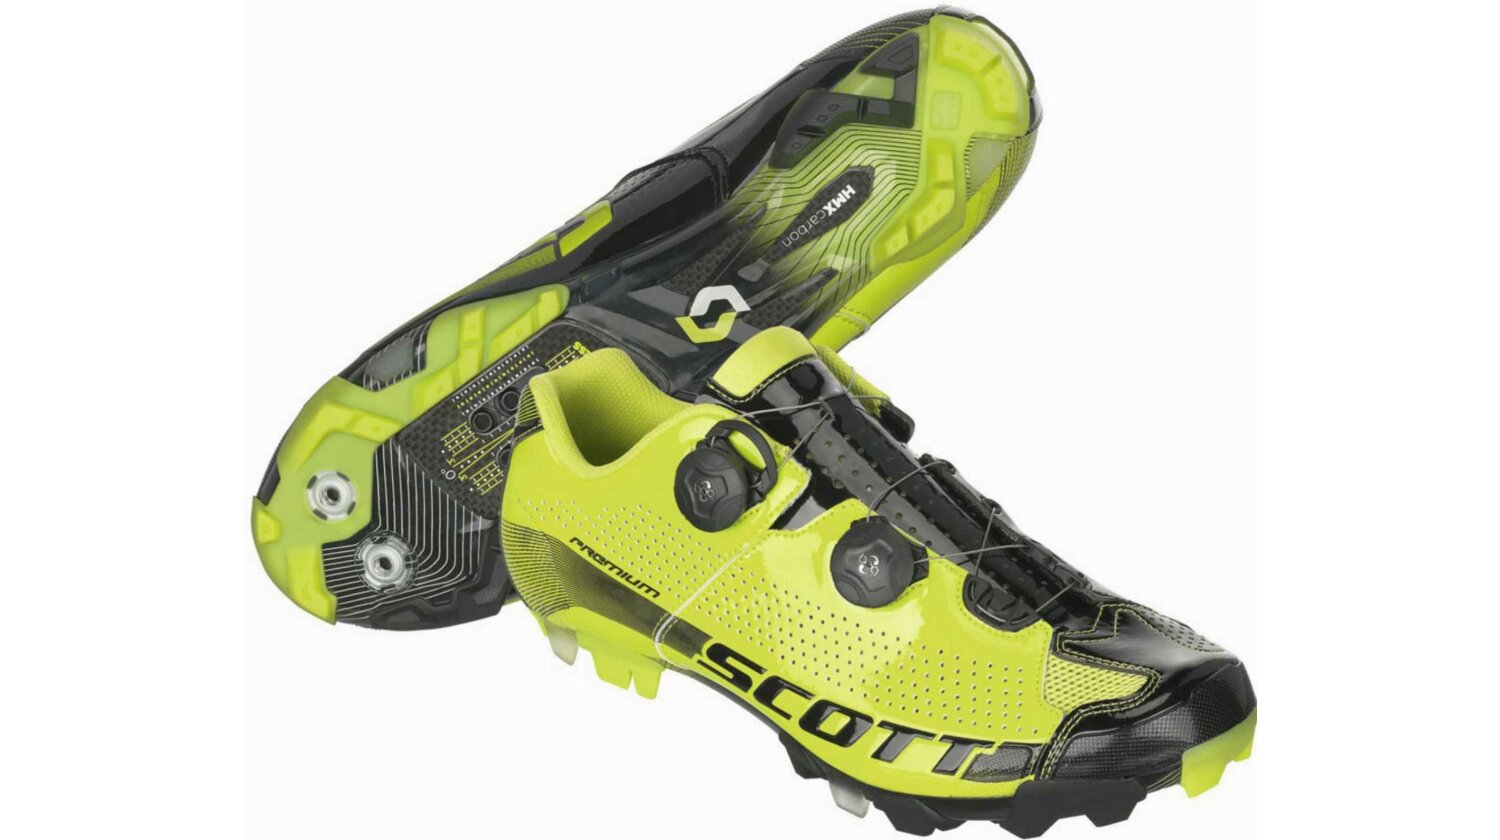 Scott MTB Premium Schuh green/black gloss 48